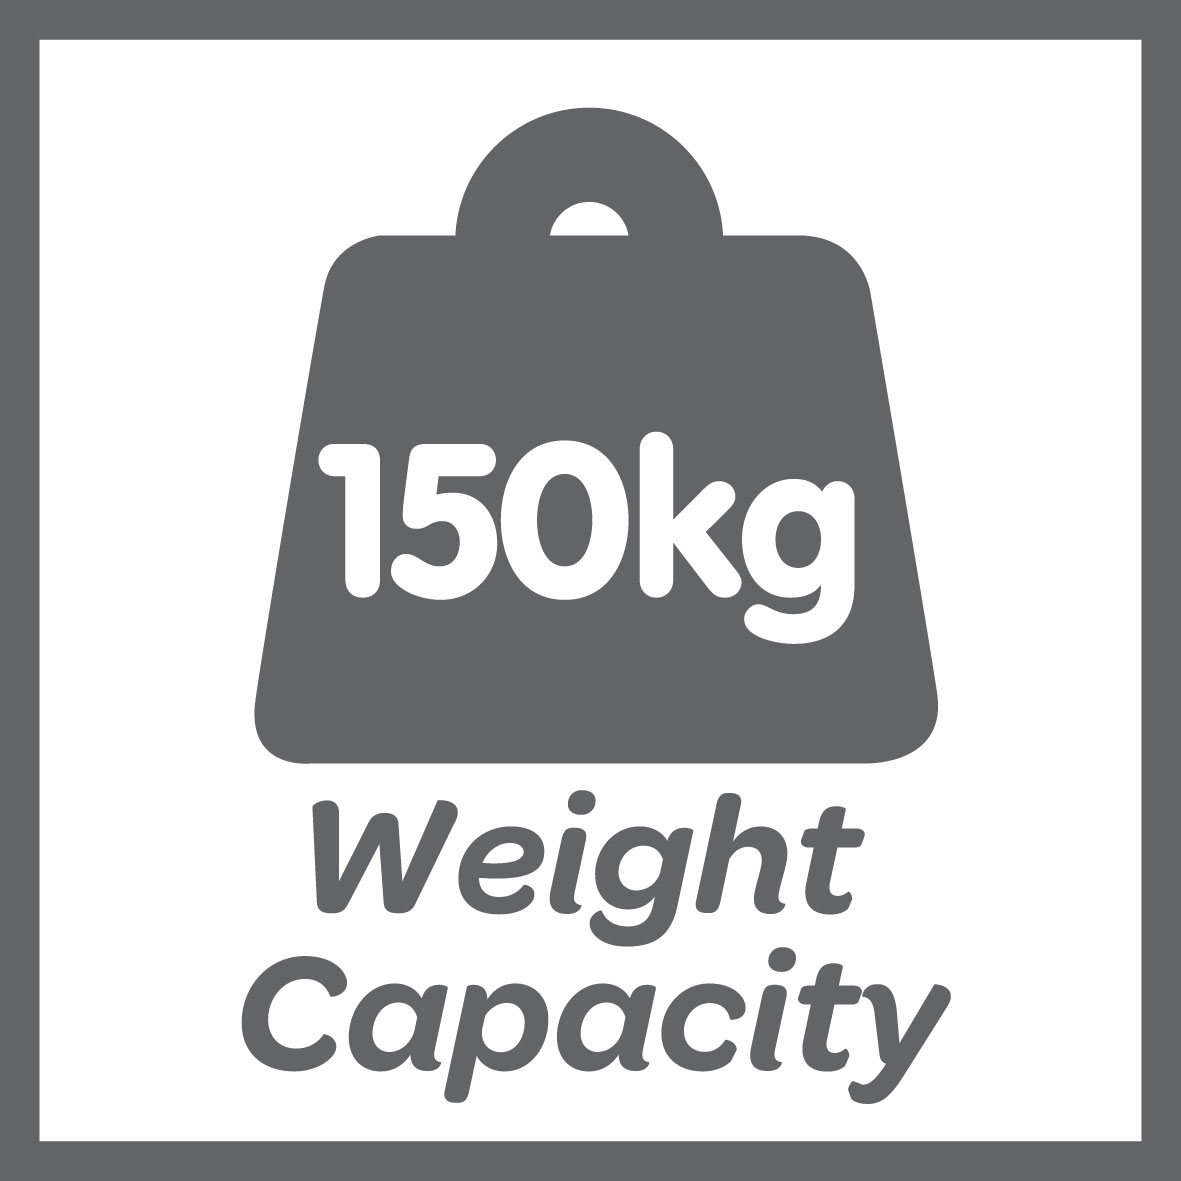 This product has a 150kg weight limit